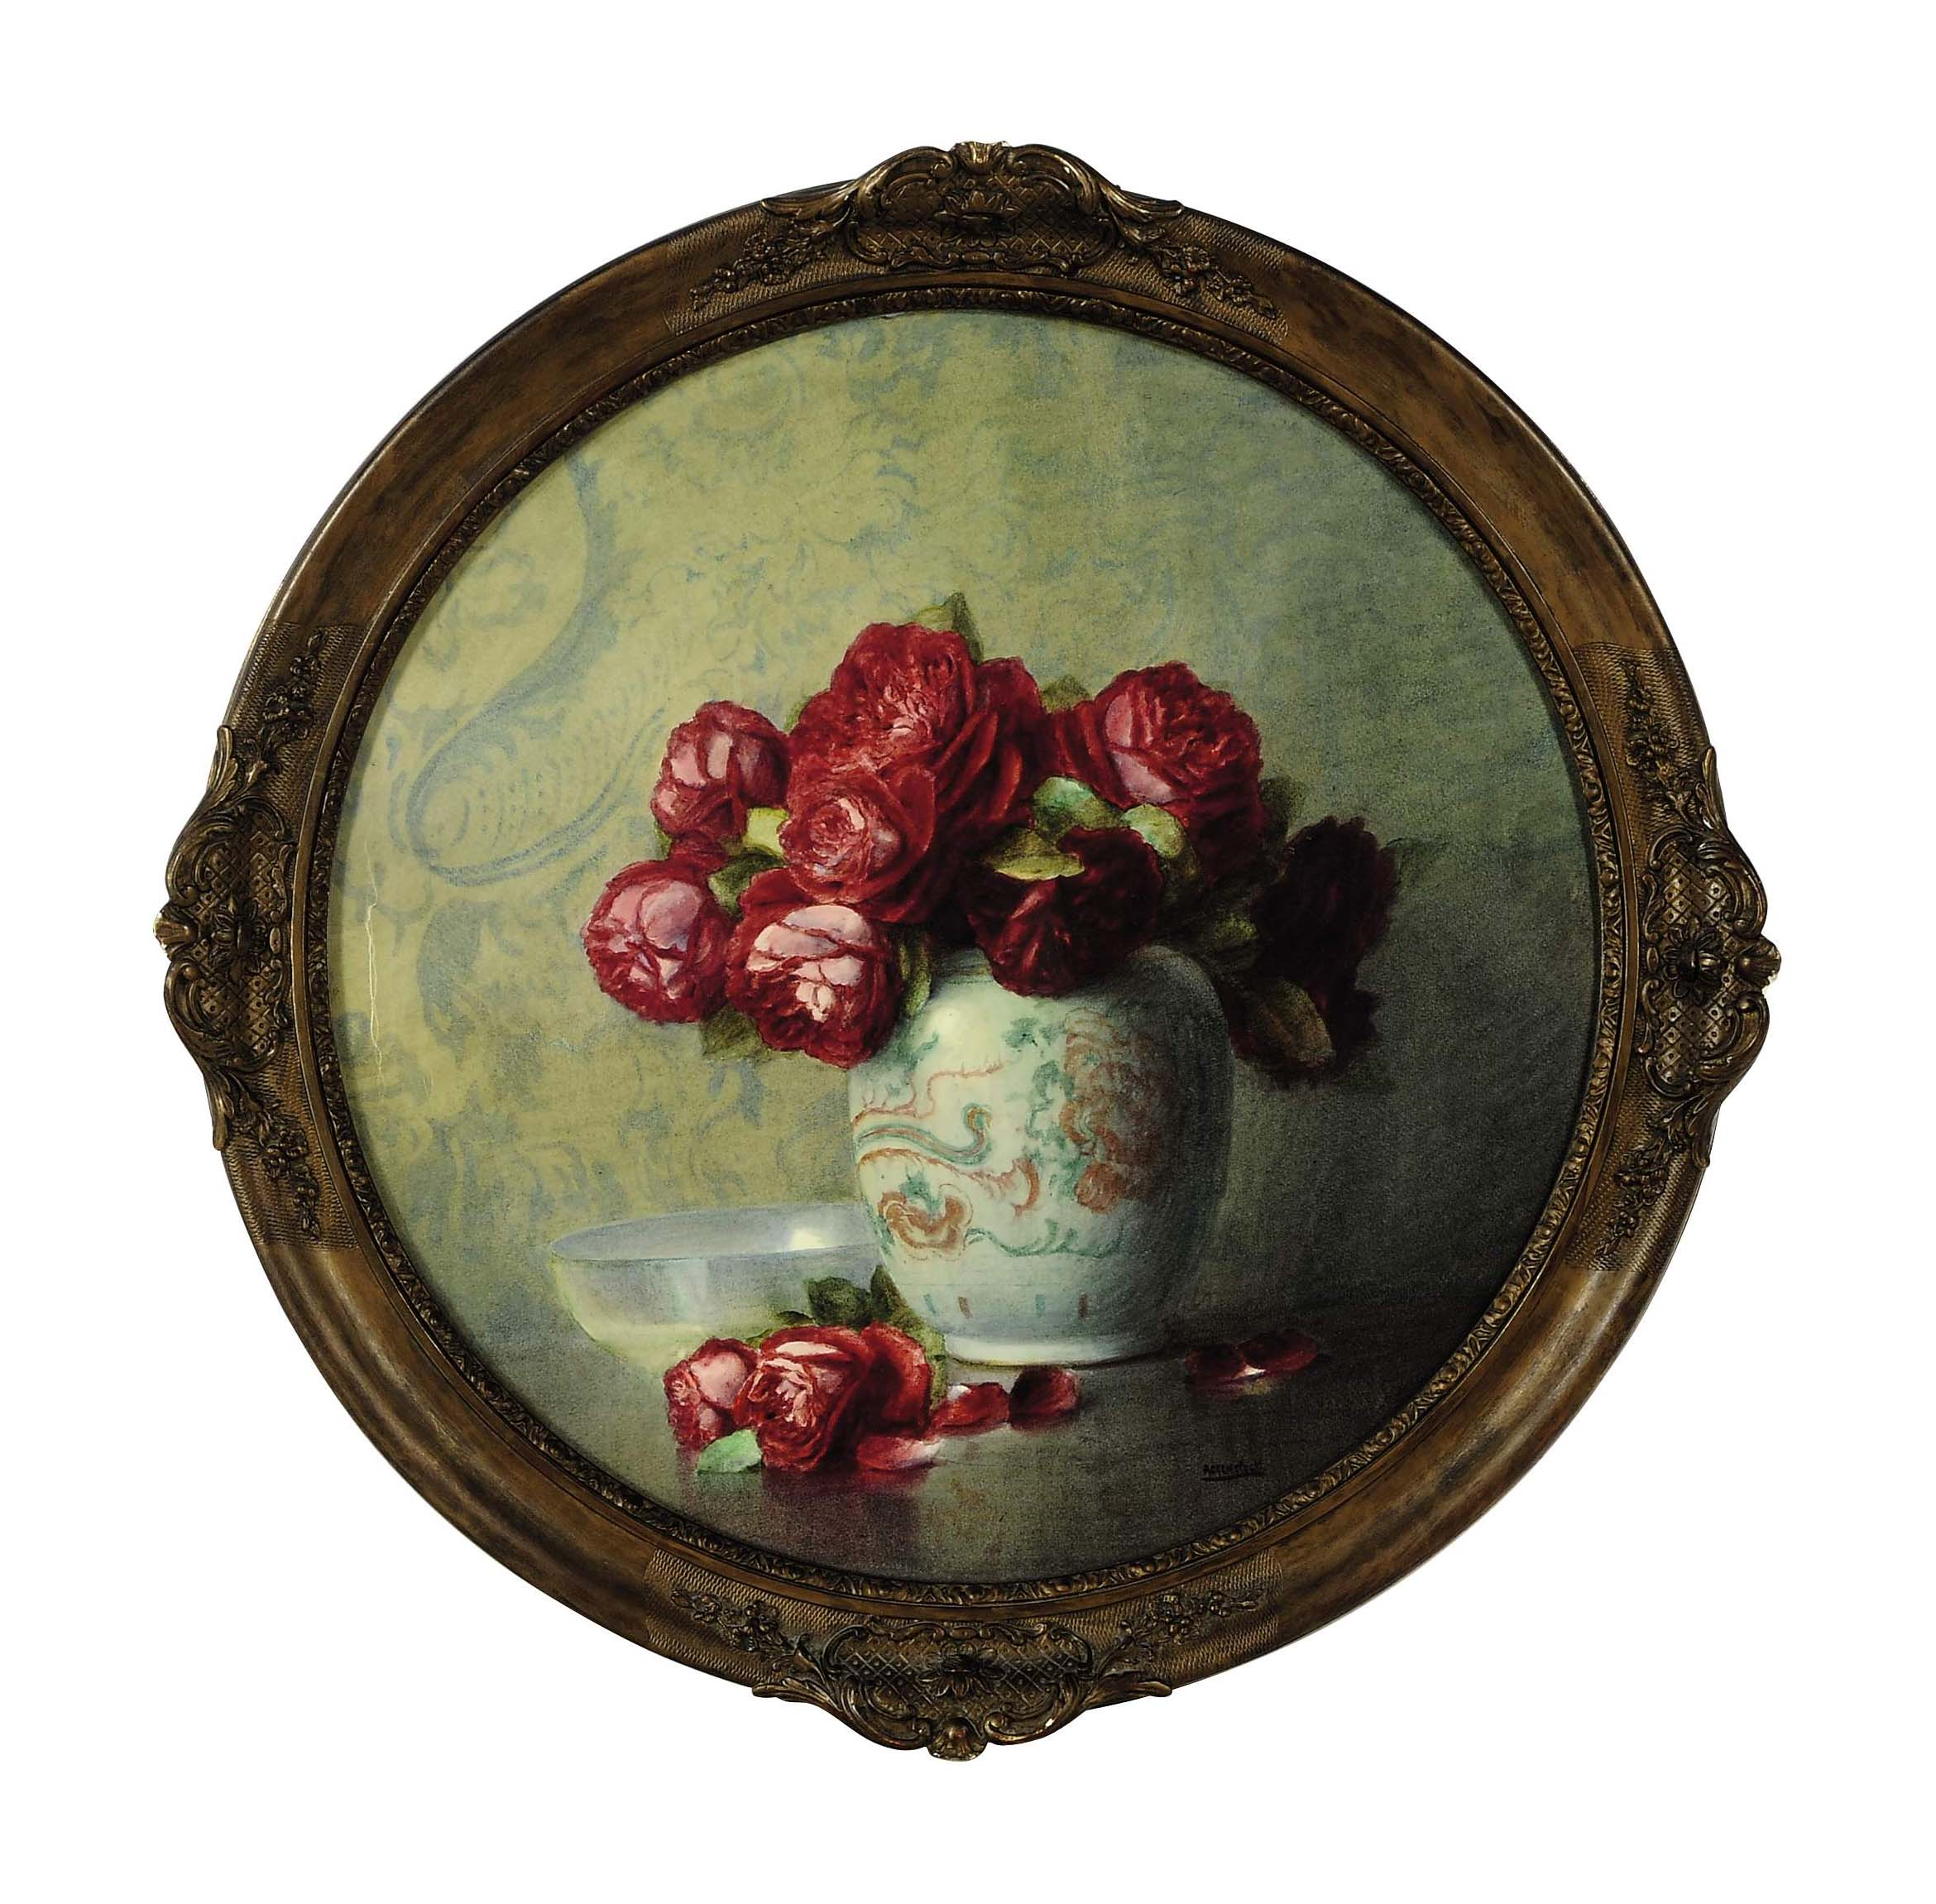 Still life of red roses in a vase